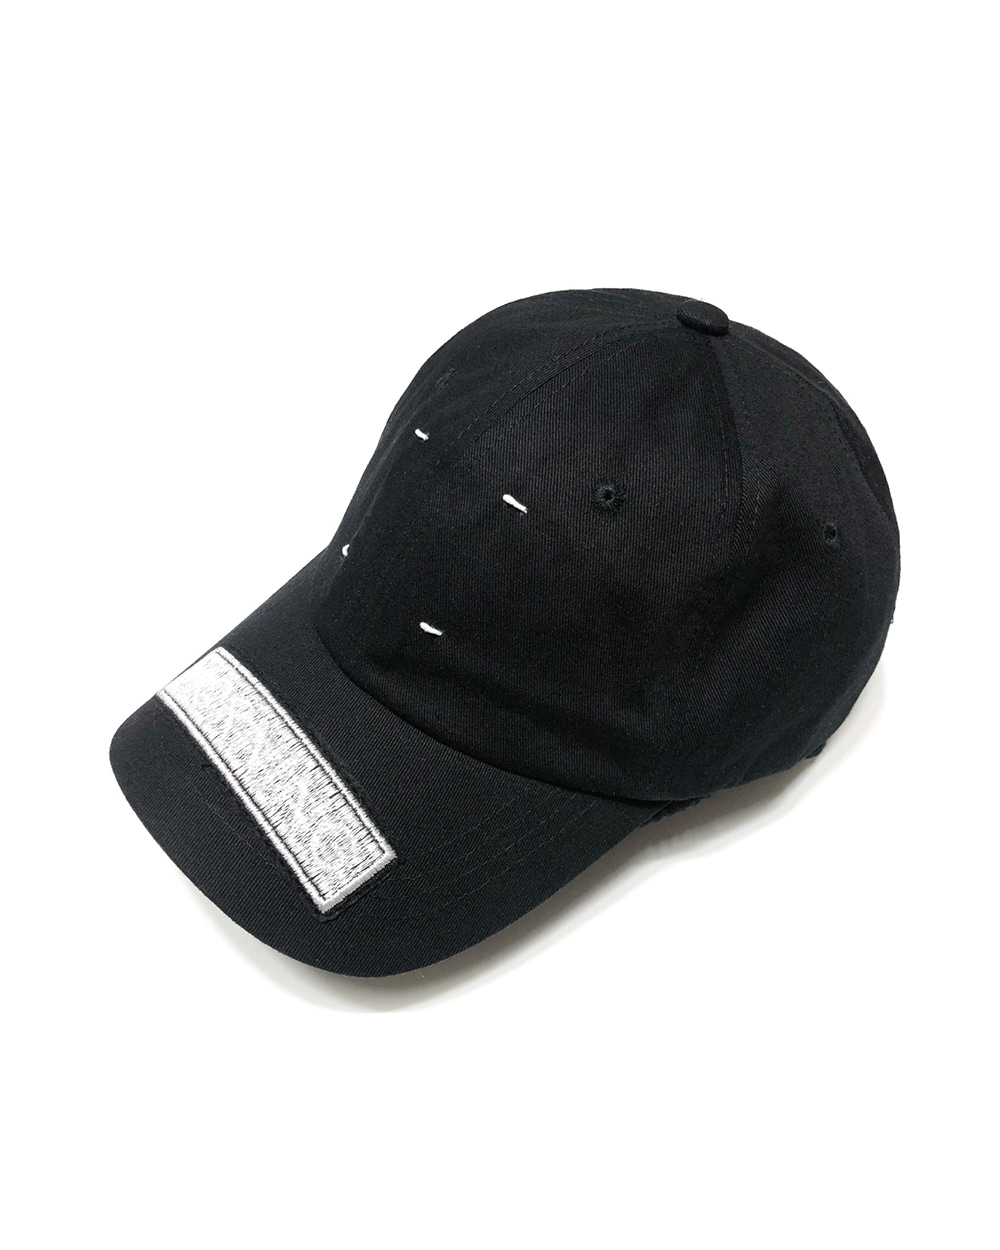 GOOD NEWS HAND STITCH ZIPPER CAP (White)